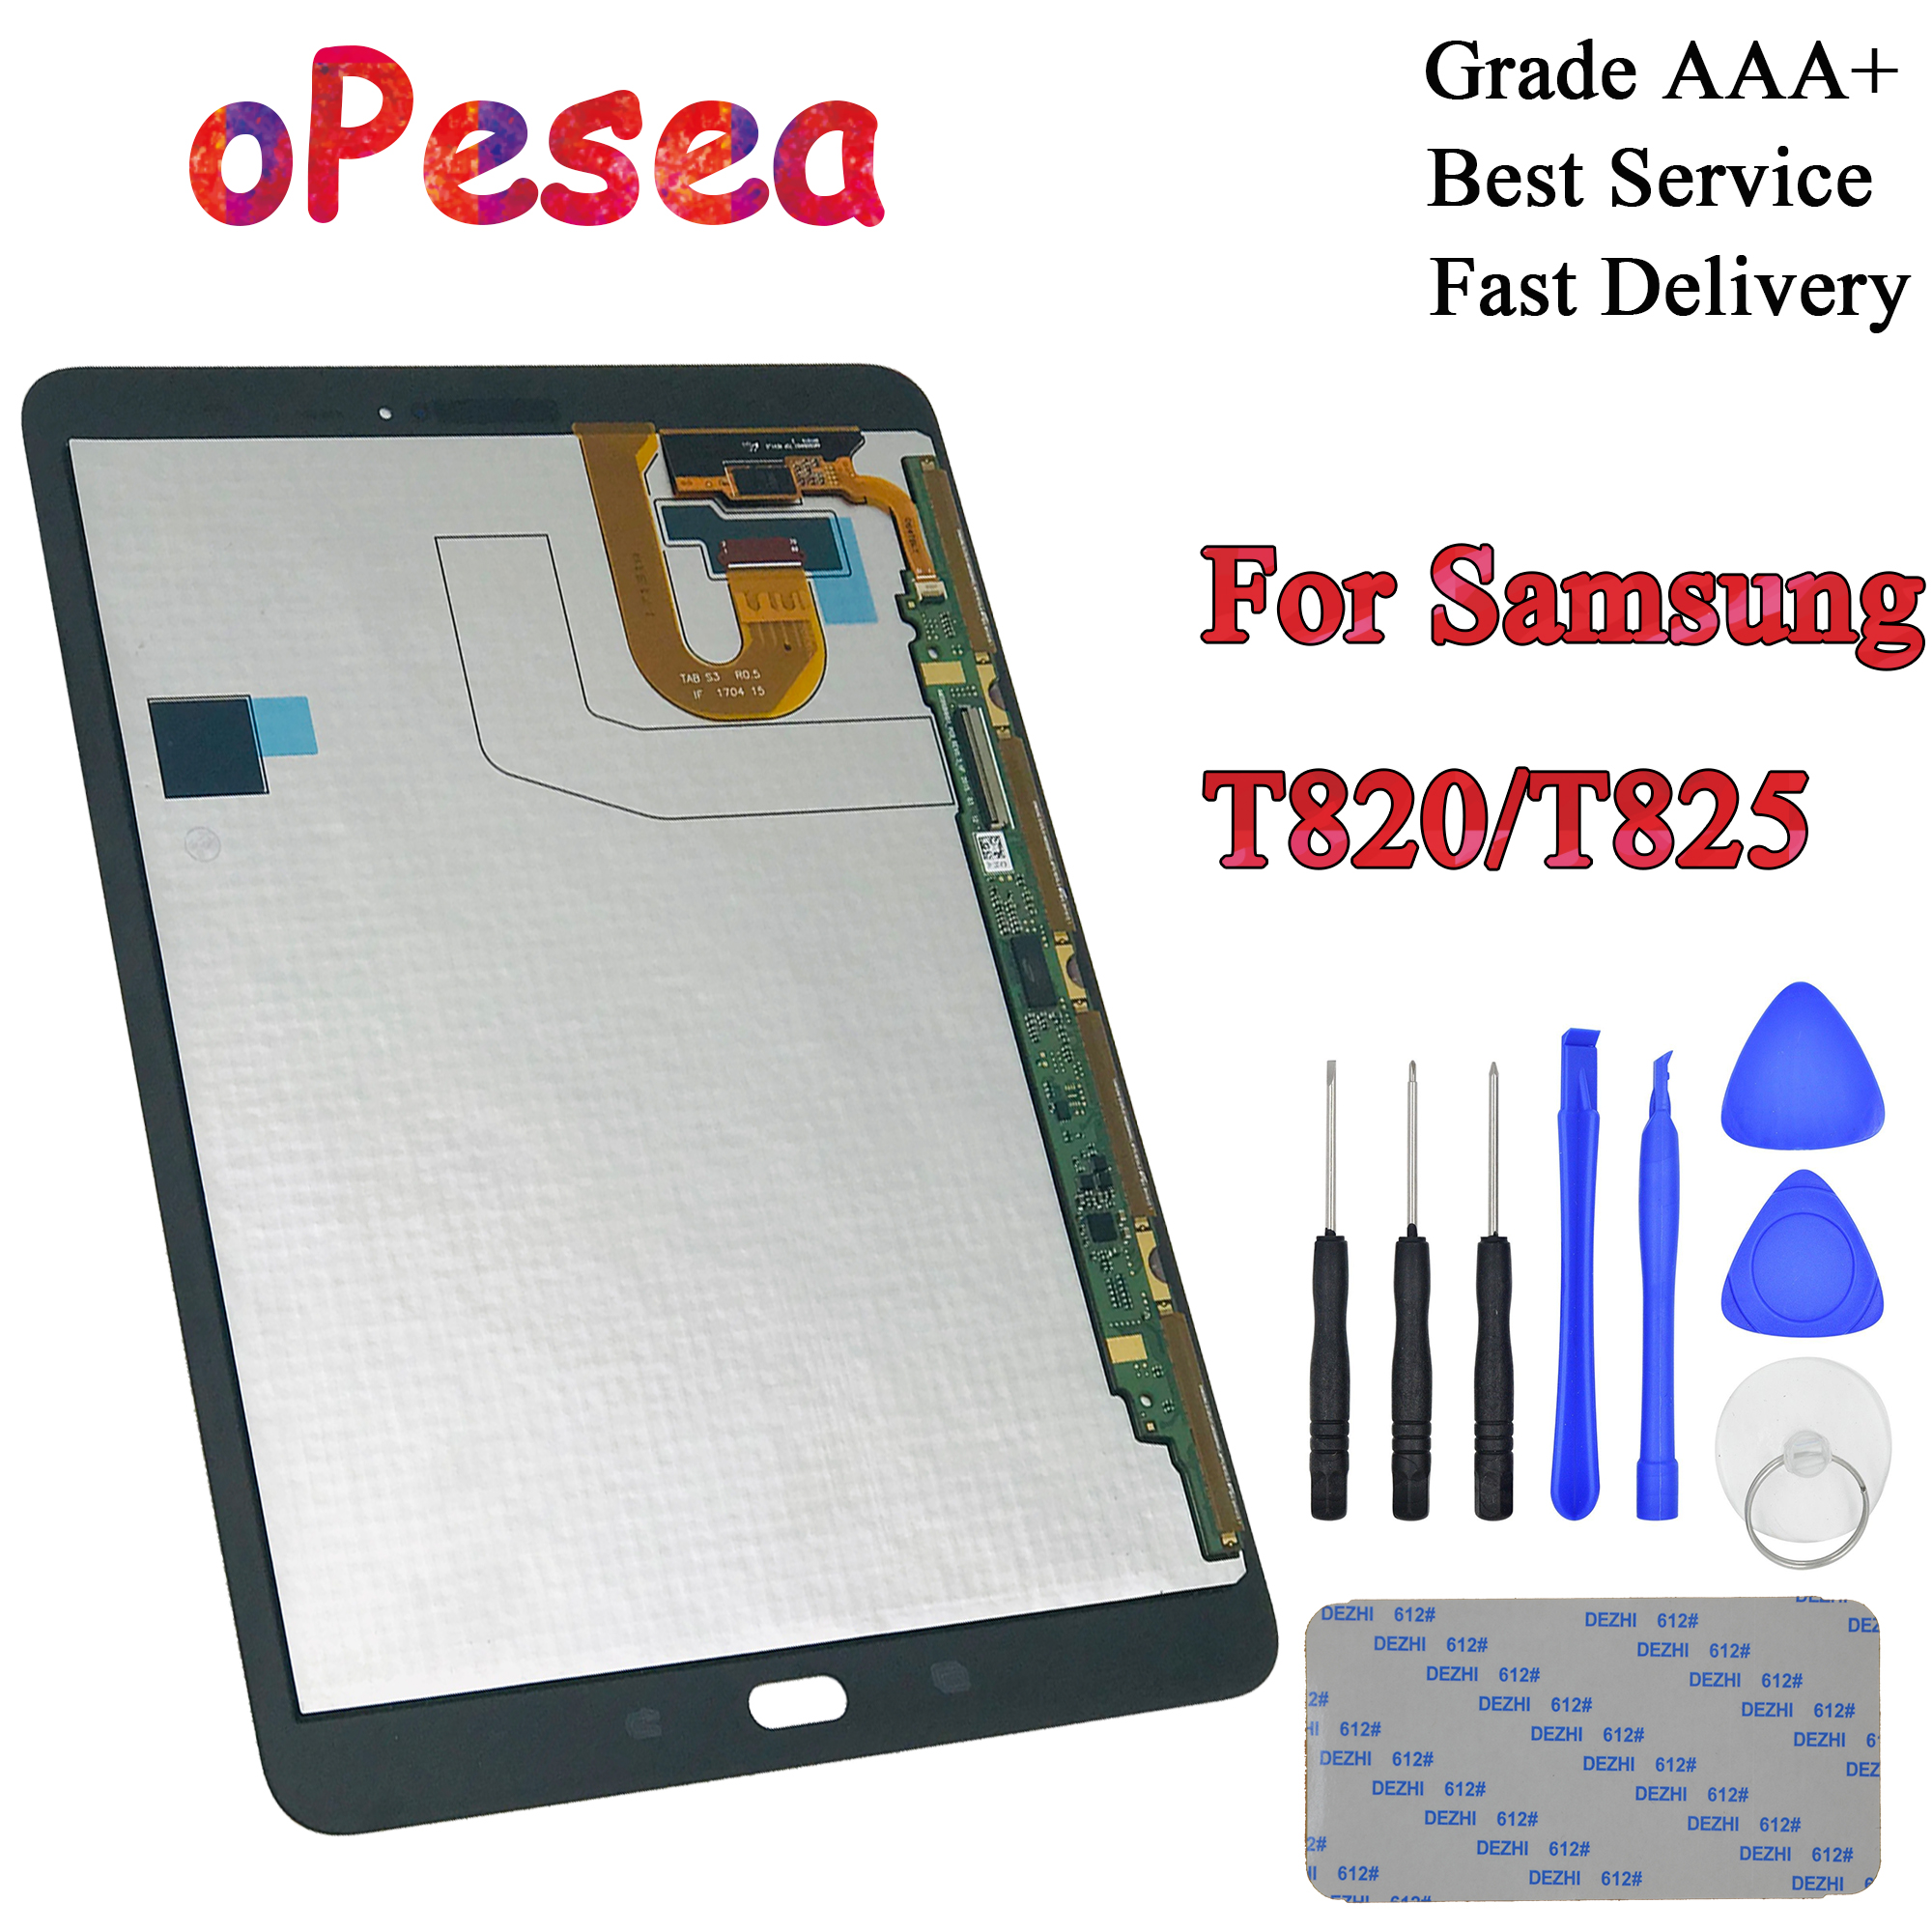 OPesea For Samsung GALAXY Tab S3 9.7 T820 T825 T827 Touch Screen Digitizer LCD Display Panel Glass Assembly